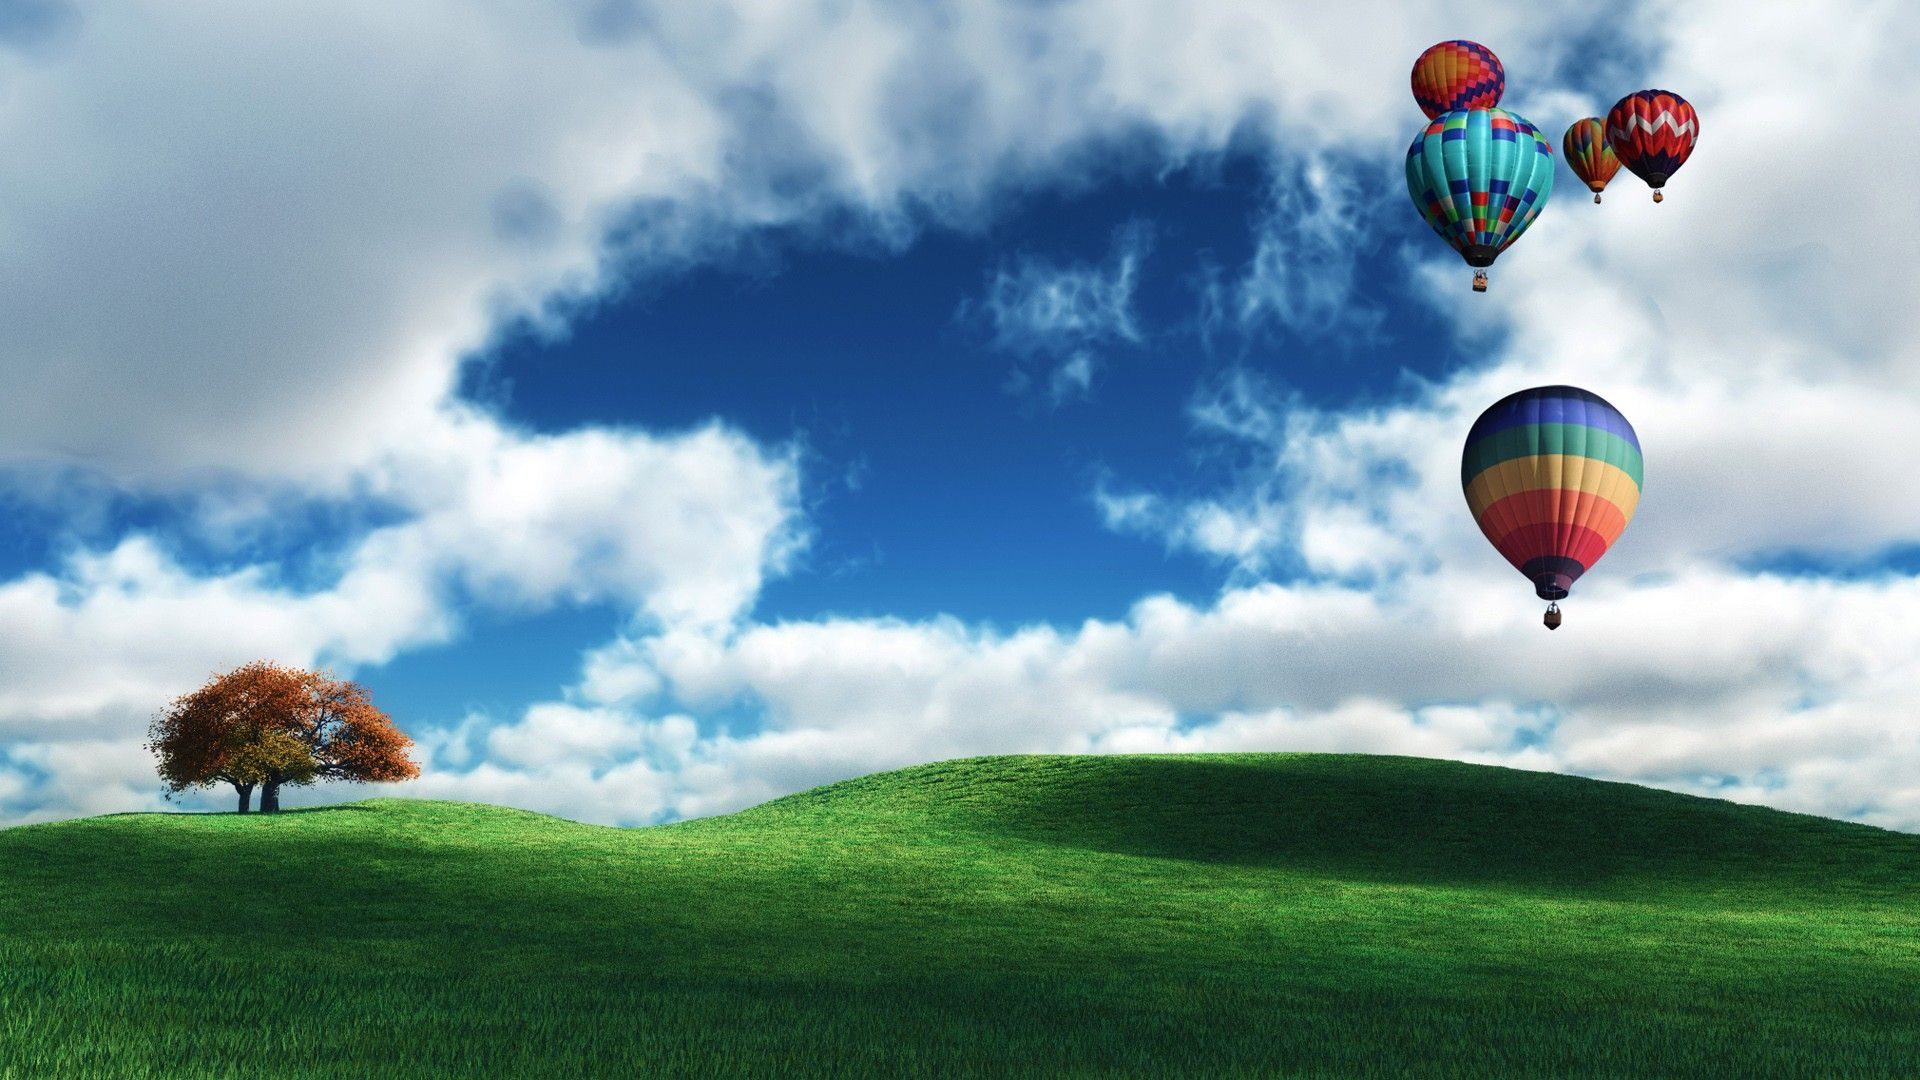 1920x1080 Dream Spring Beautiful Balloon Hd Wallpapers 1080p Background Images Field Wallpaper Hd Wallpapers 1080p